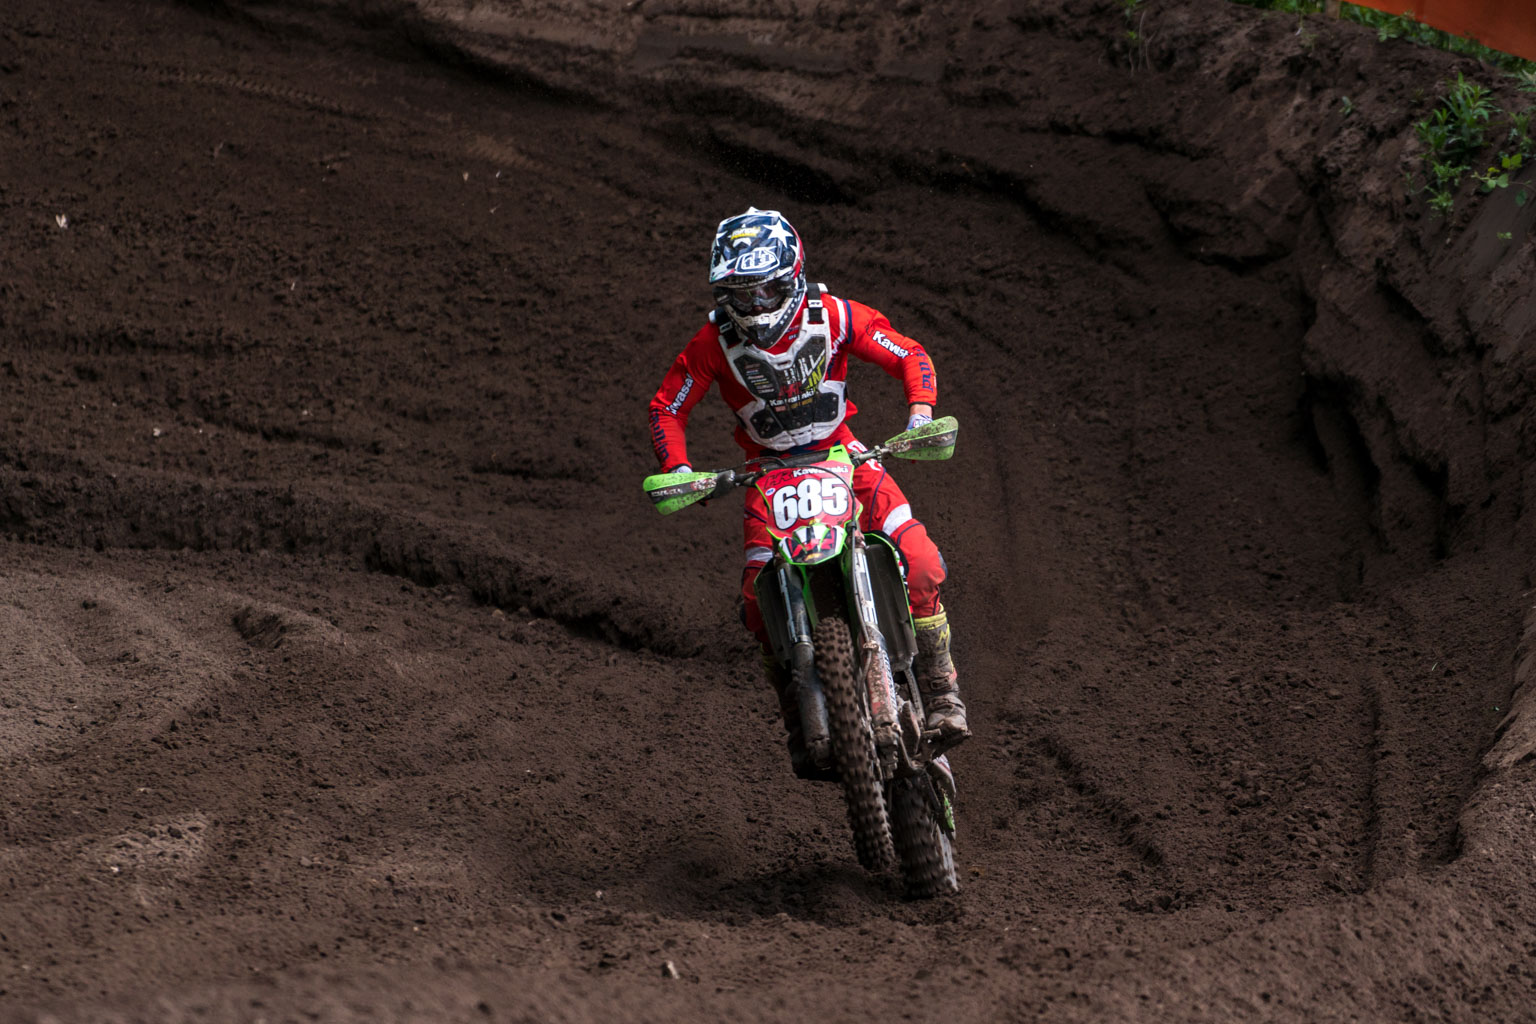 Steven with the red plate in his last British championship race